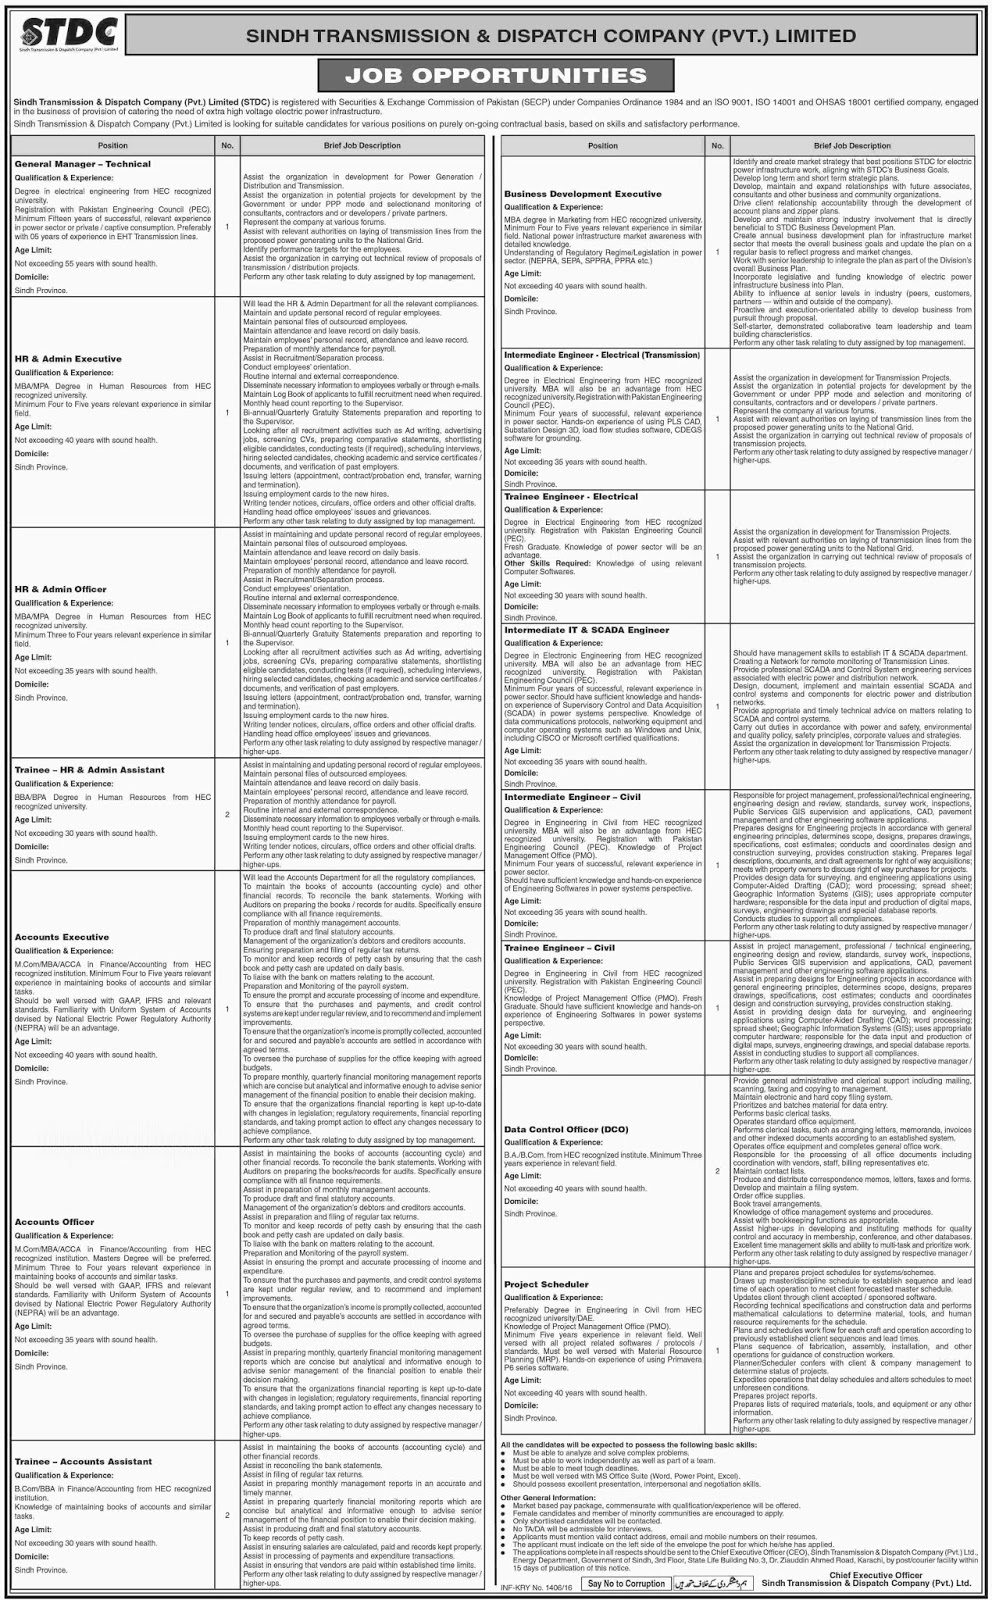 Sindh Transmission & Dispatch Company Jobs 2016